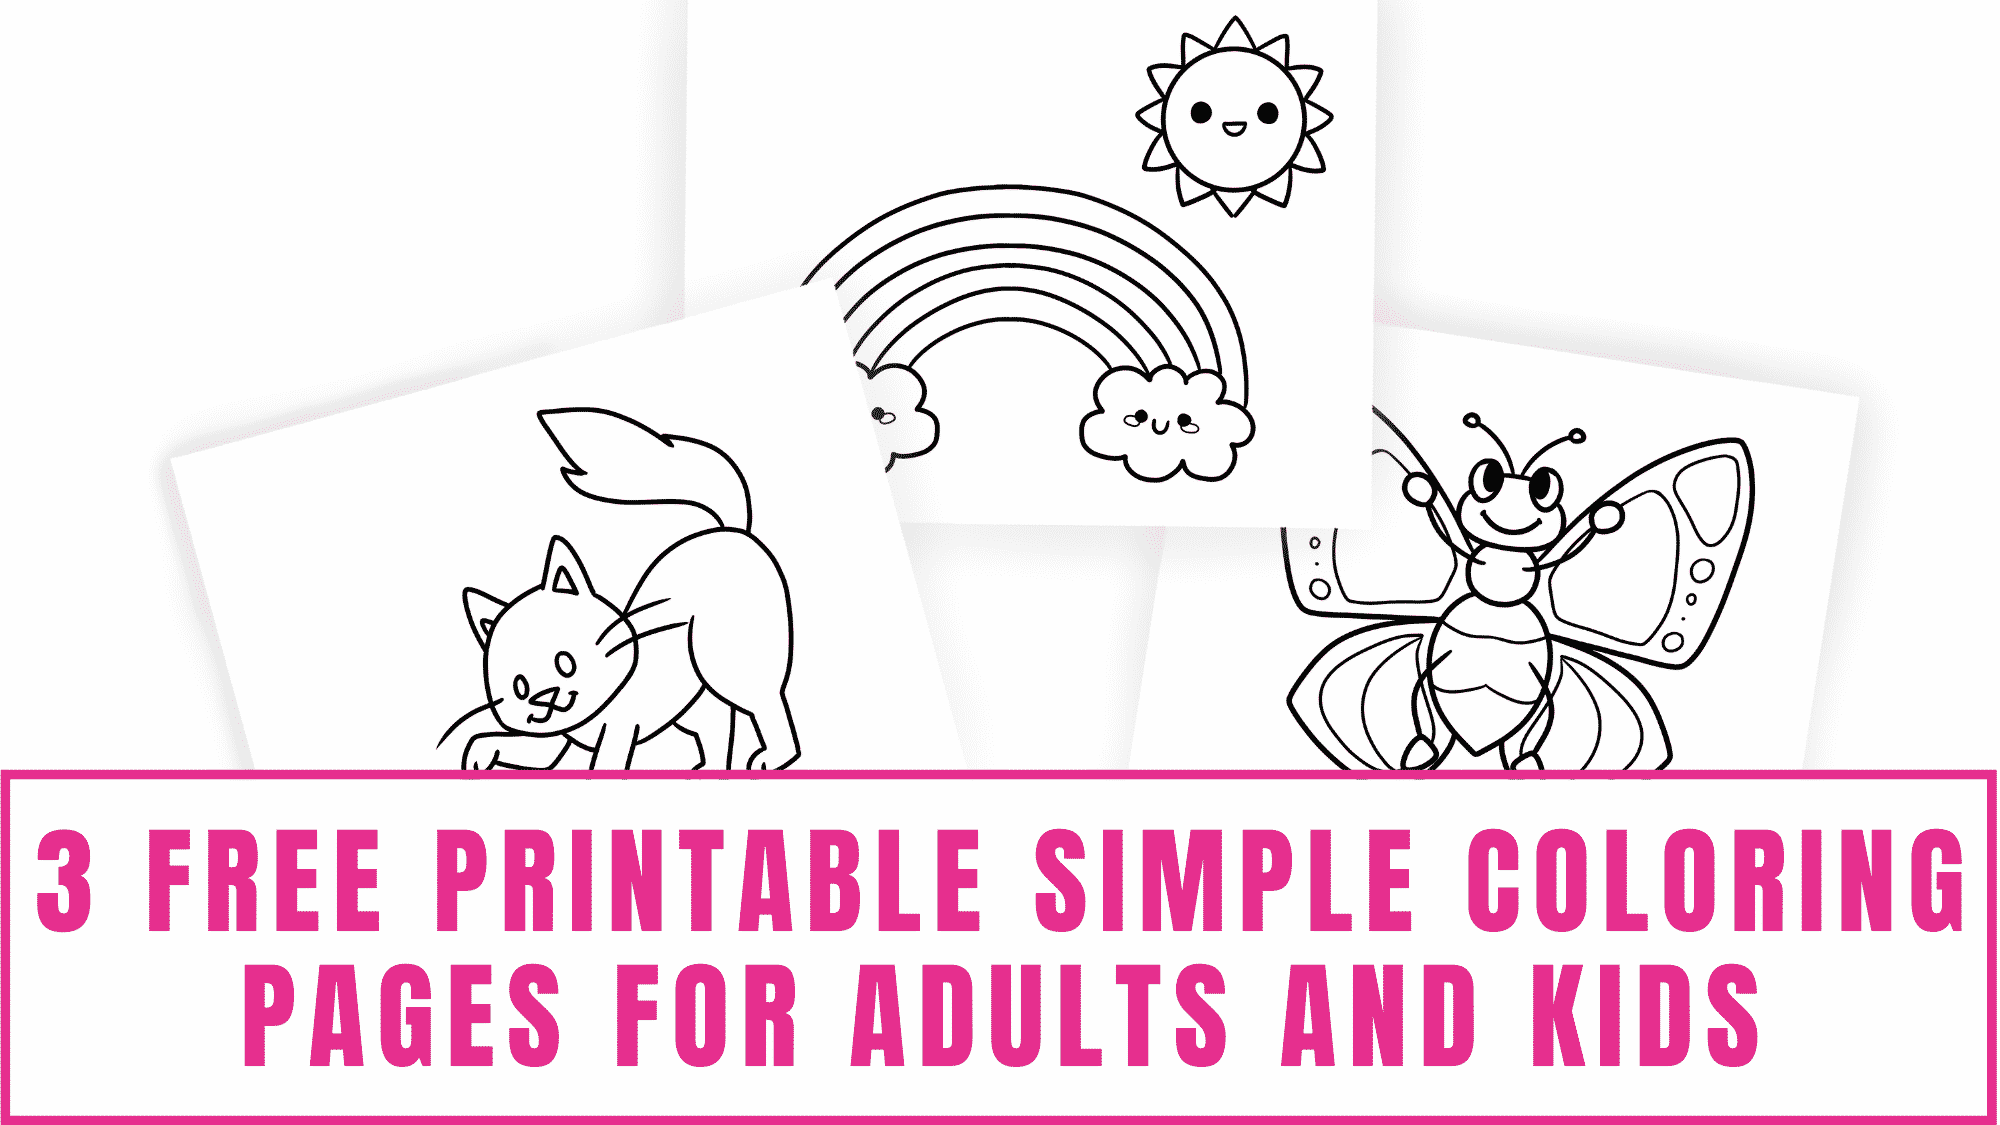 Are these printable fall coloring pages for adults too complicated for your kids? These free printable simple coloring pages for adults and kids may be more their speed.